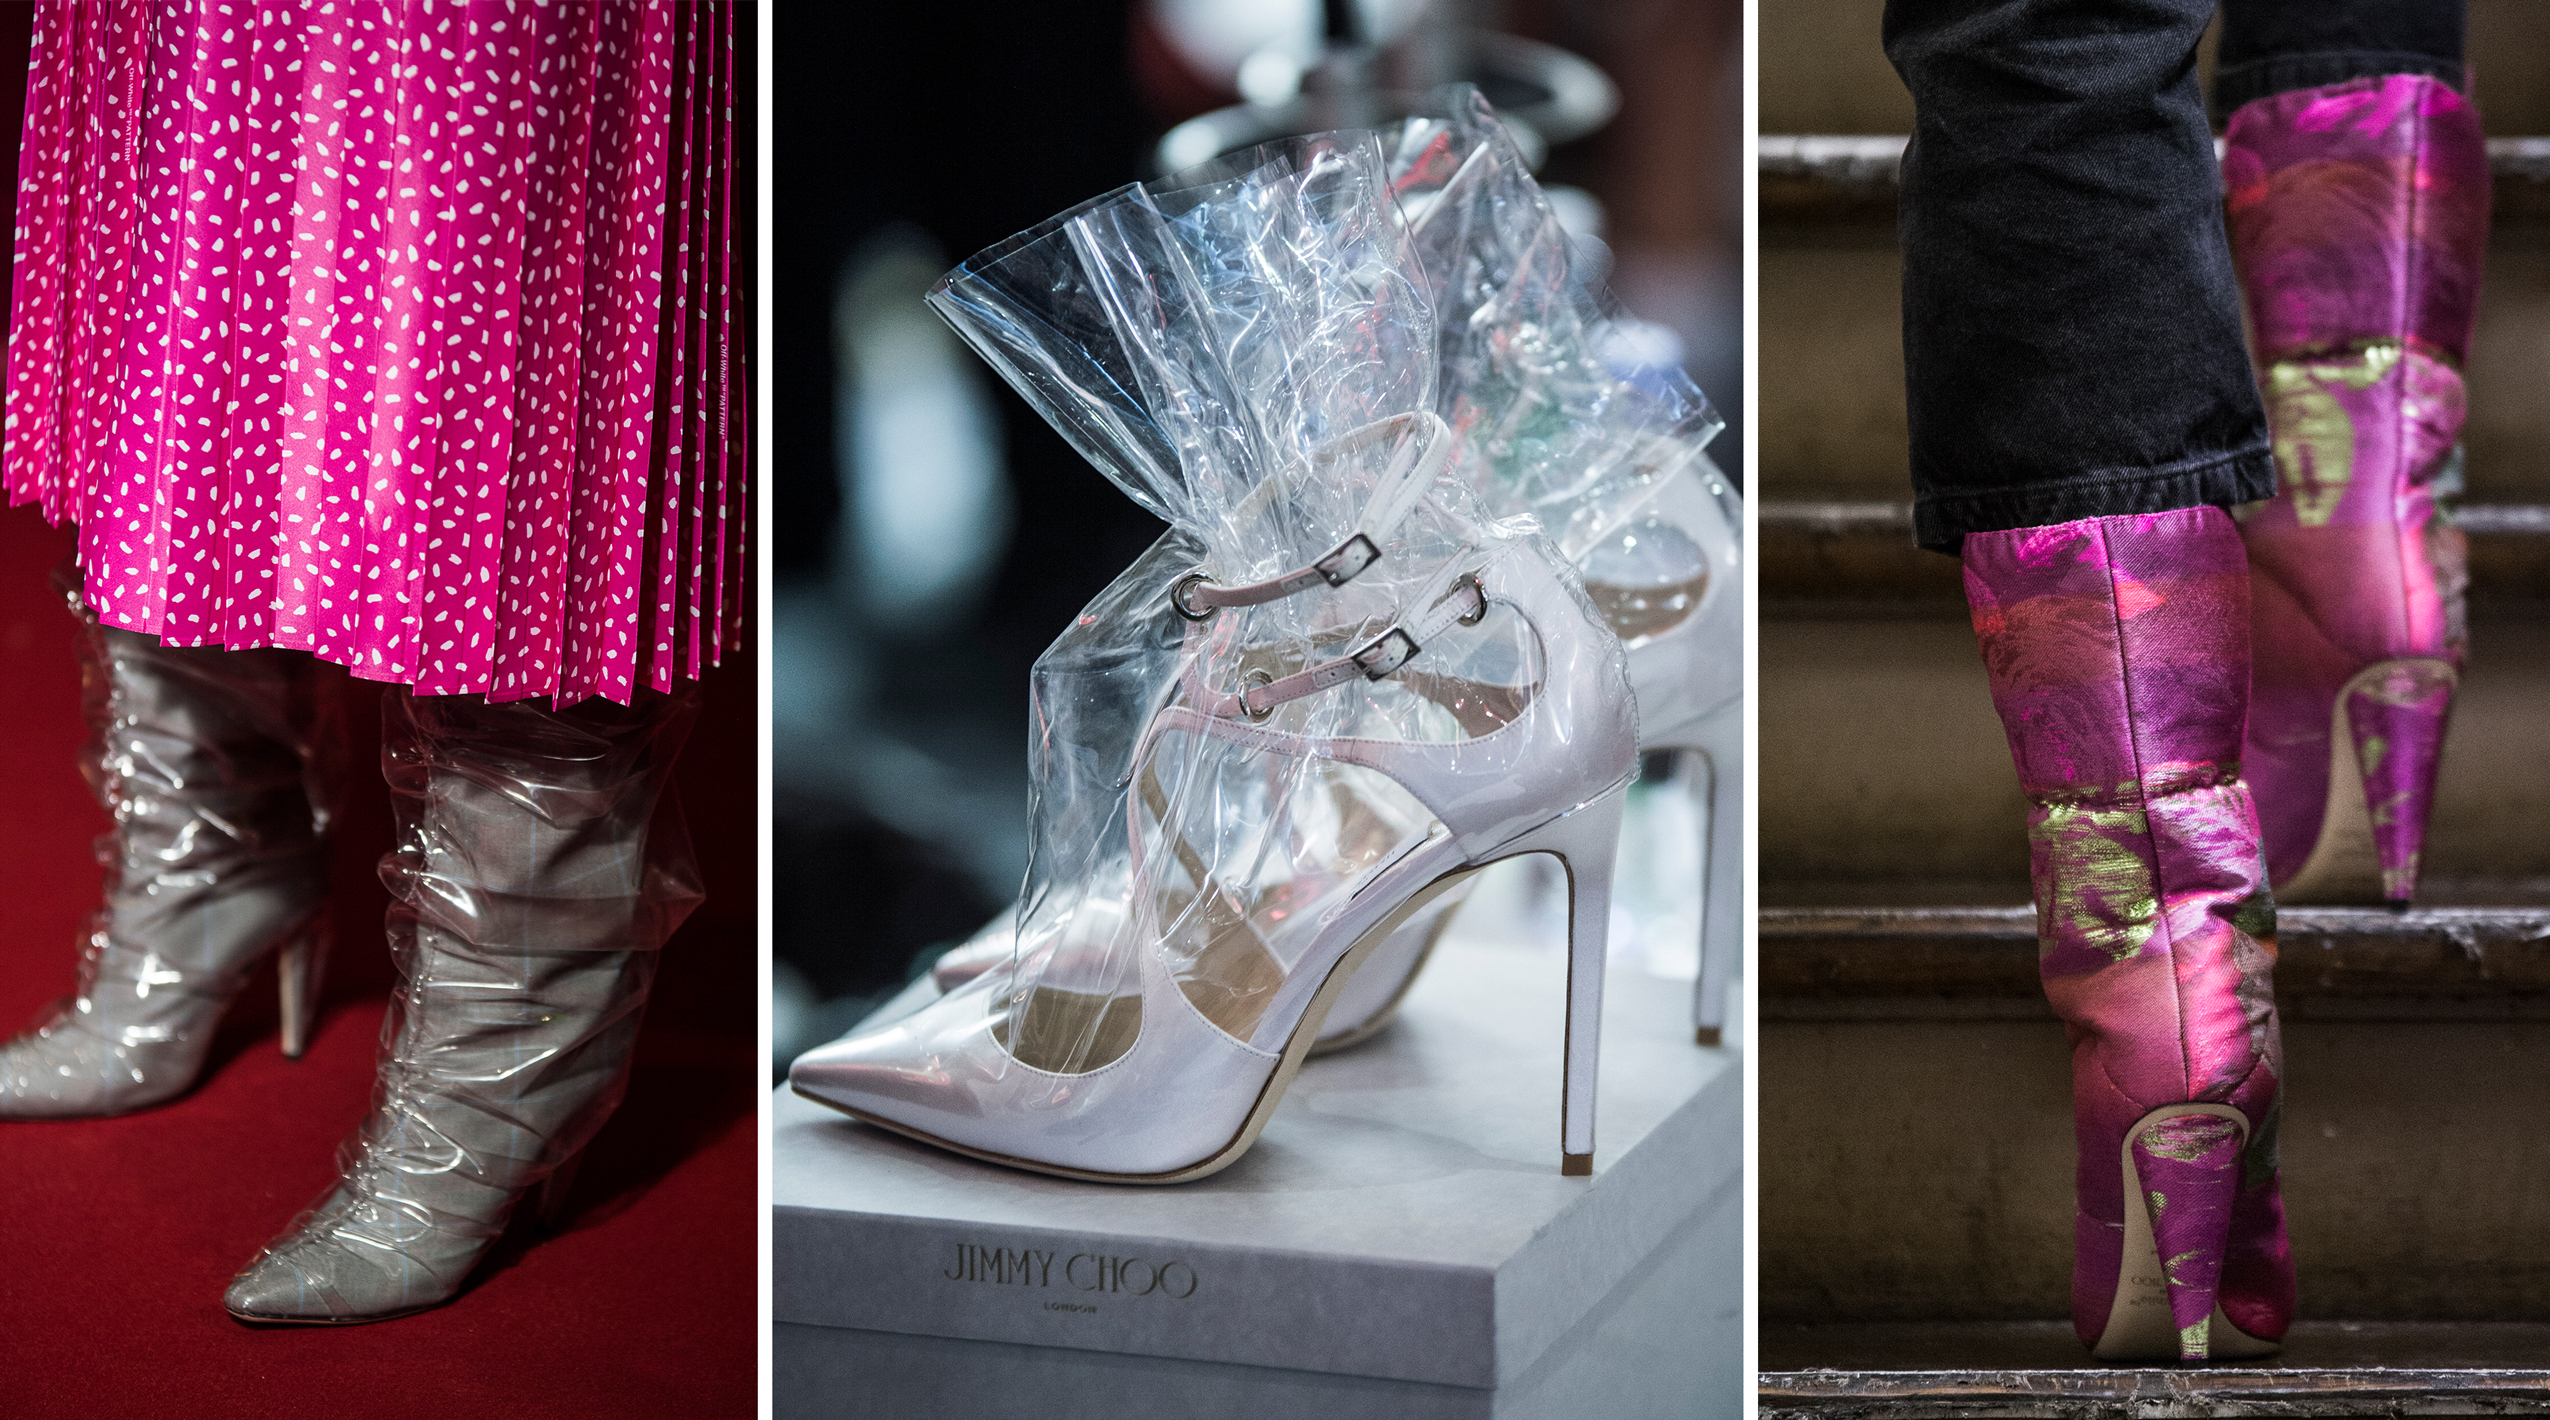 Off-White c/o Jimmy Choo: The most plastic fantastic shoe collab is inspired by Cinderella